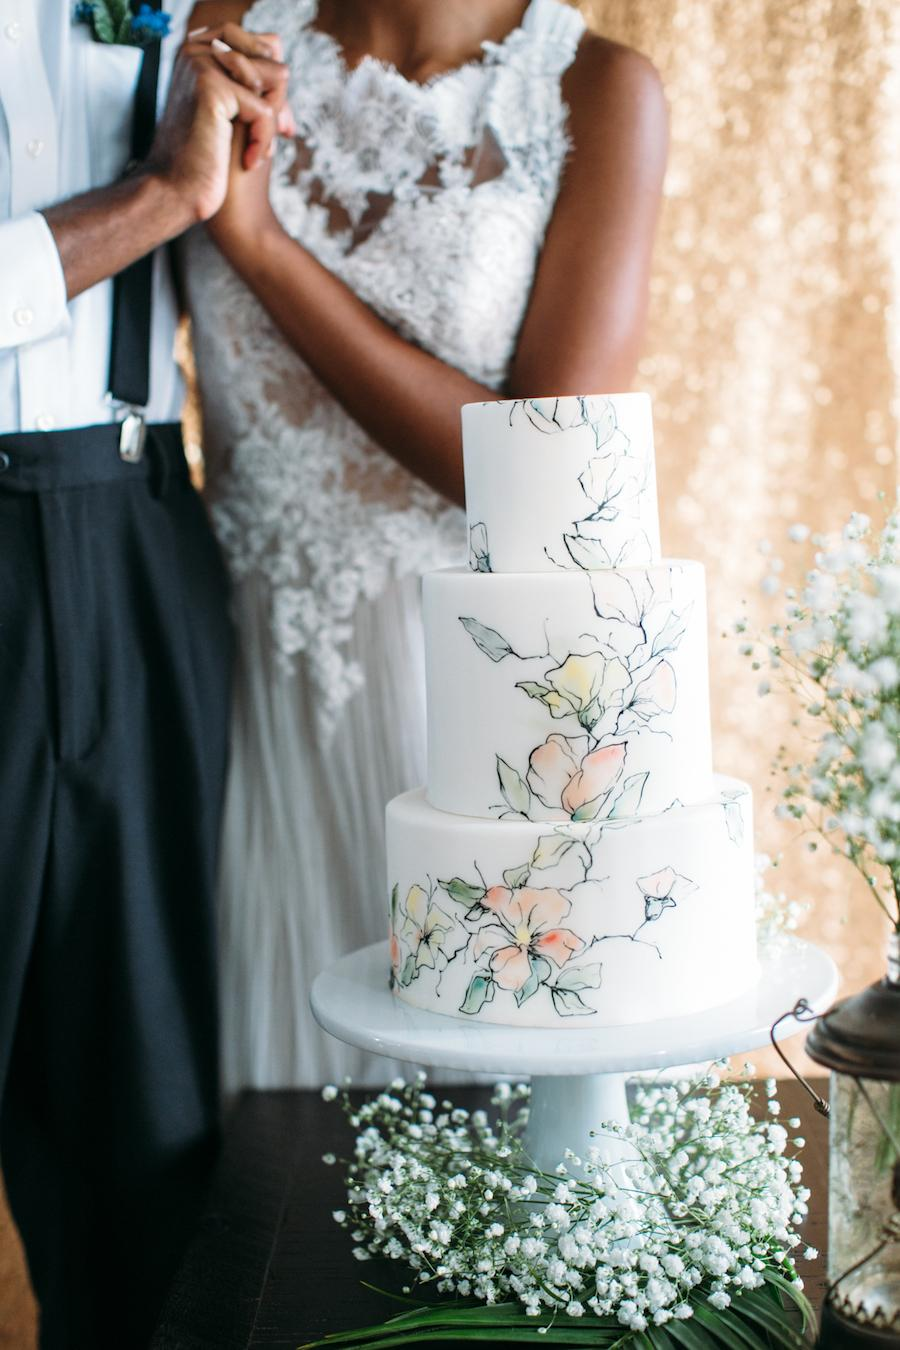 Unique Wedding Ideas.Four Unique Wedding Ideas For Every Bride And Groom Philly In Love